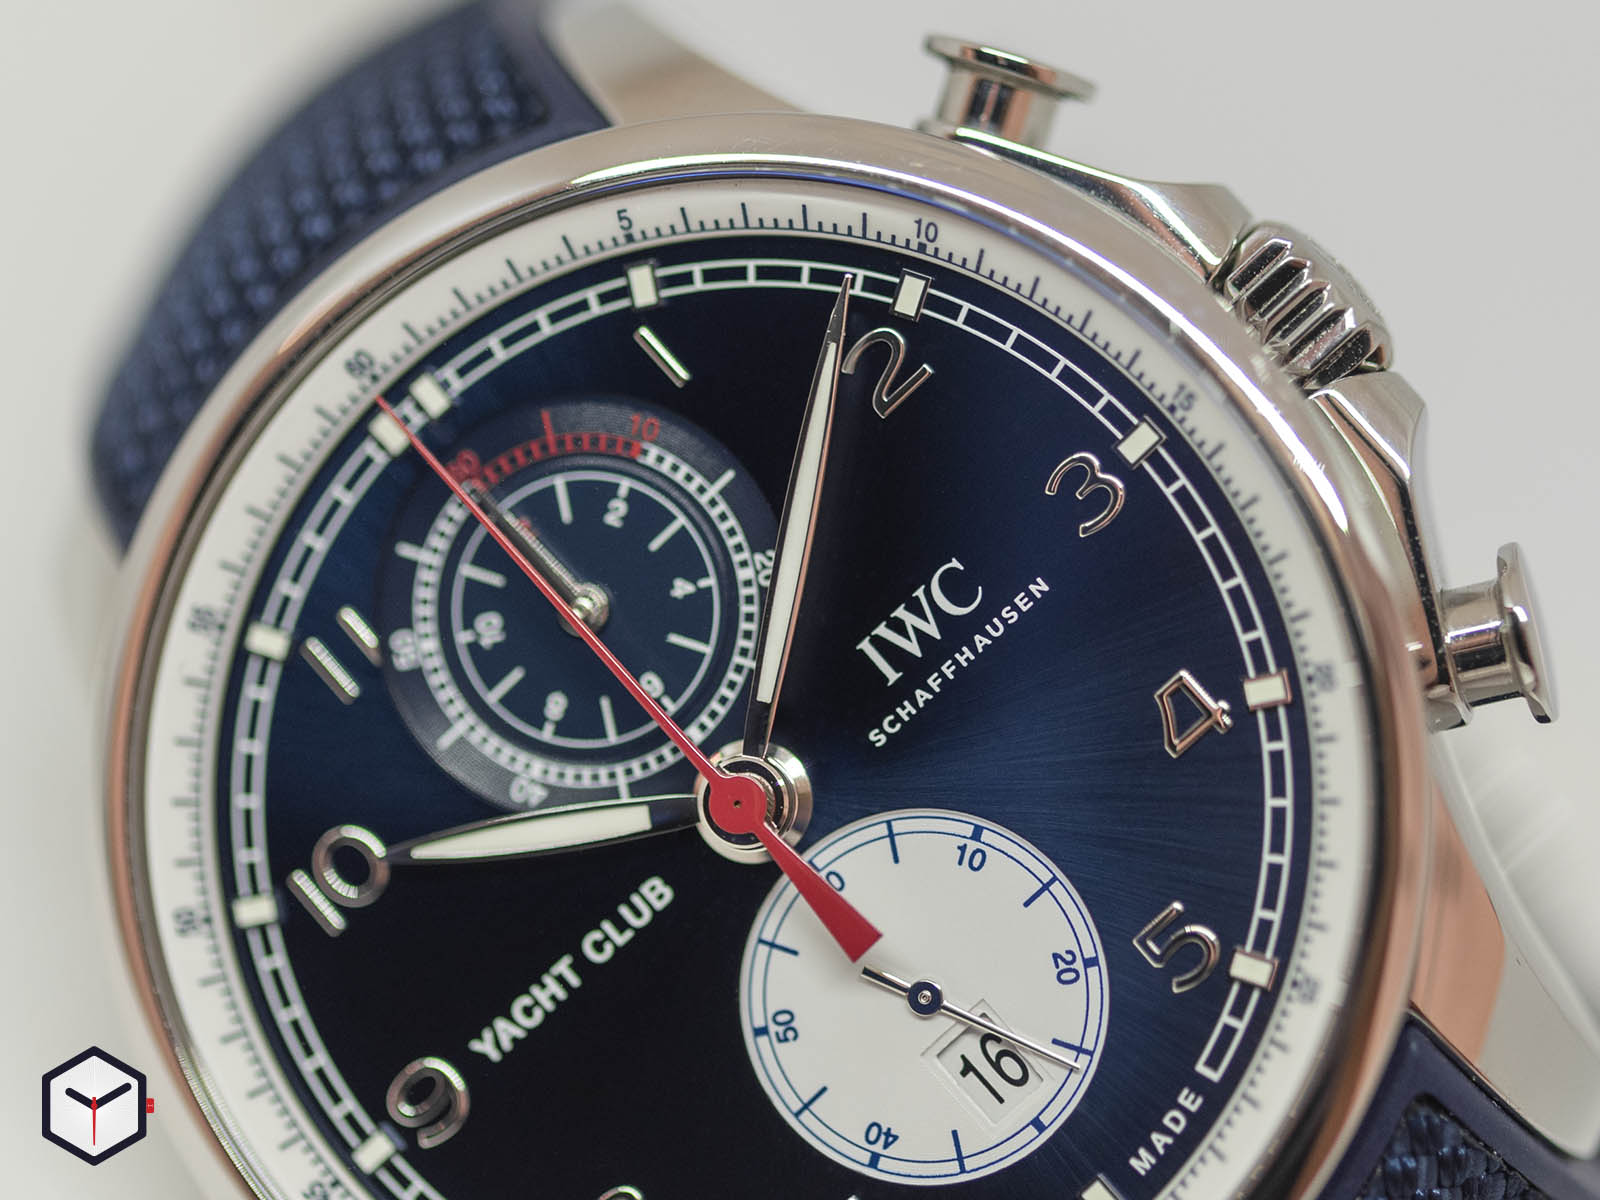 iw390704-iwc-portugieser-yacht-club-chronograph-edition-orlebar-brown-2.jpg